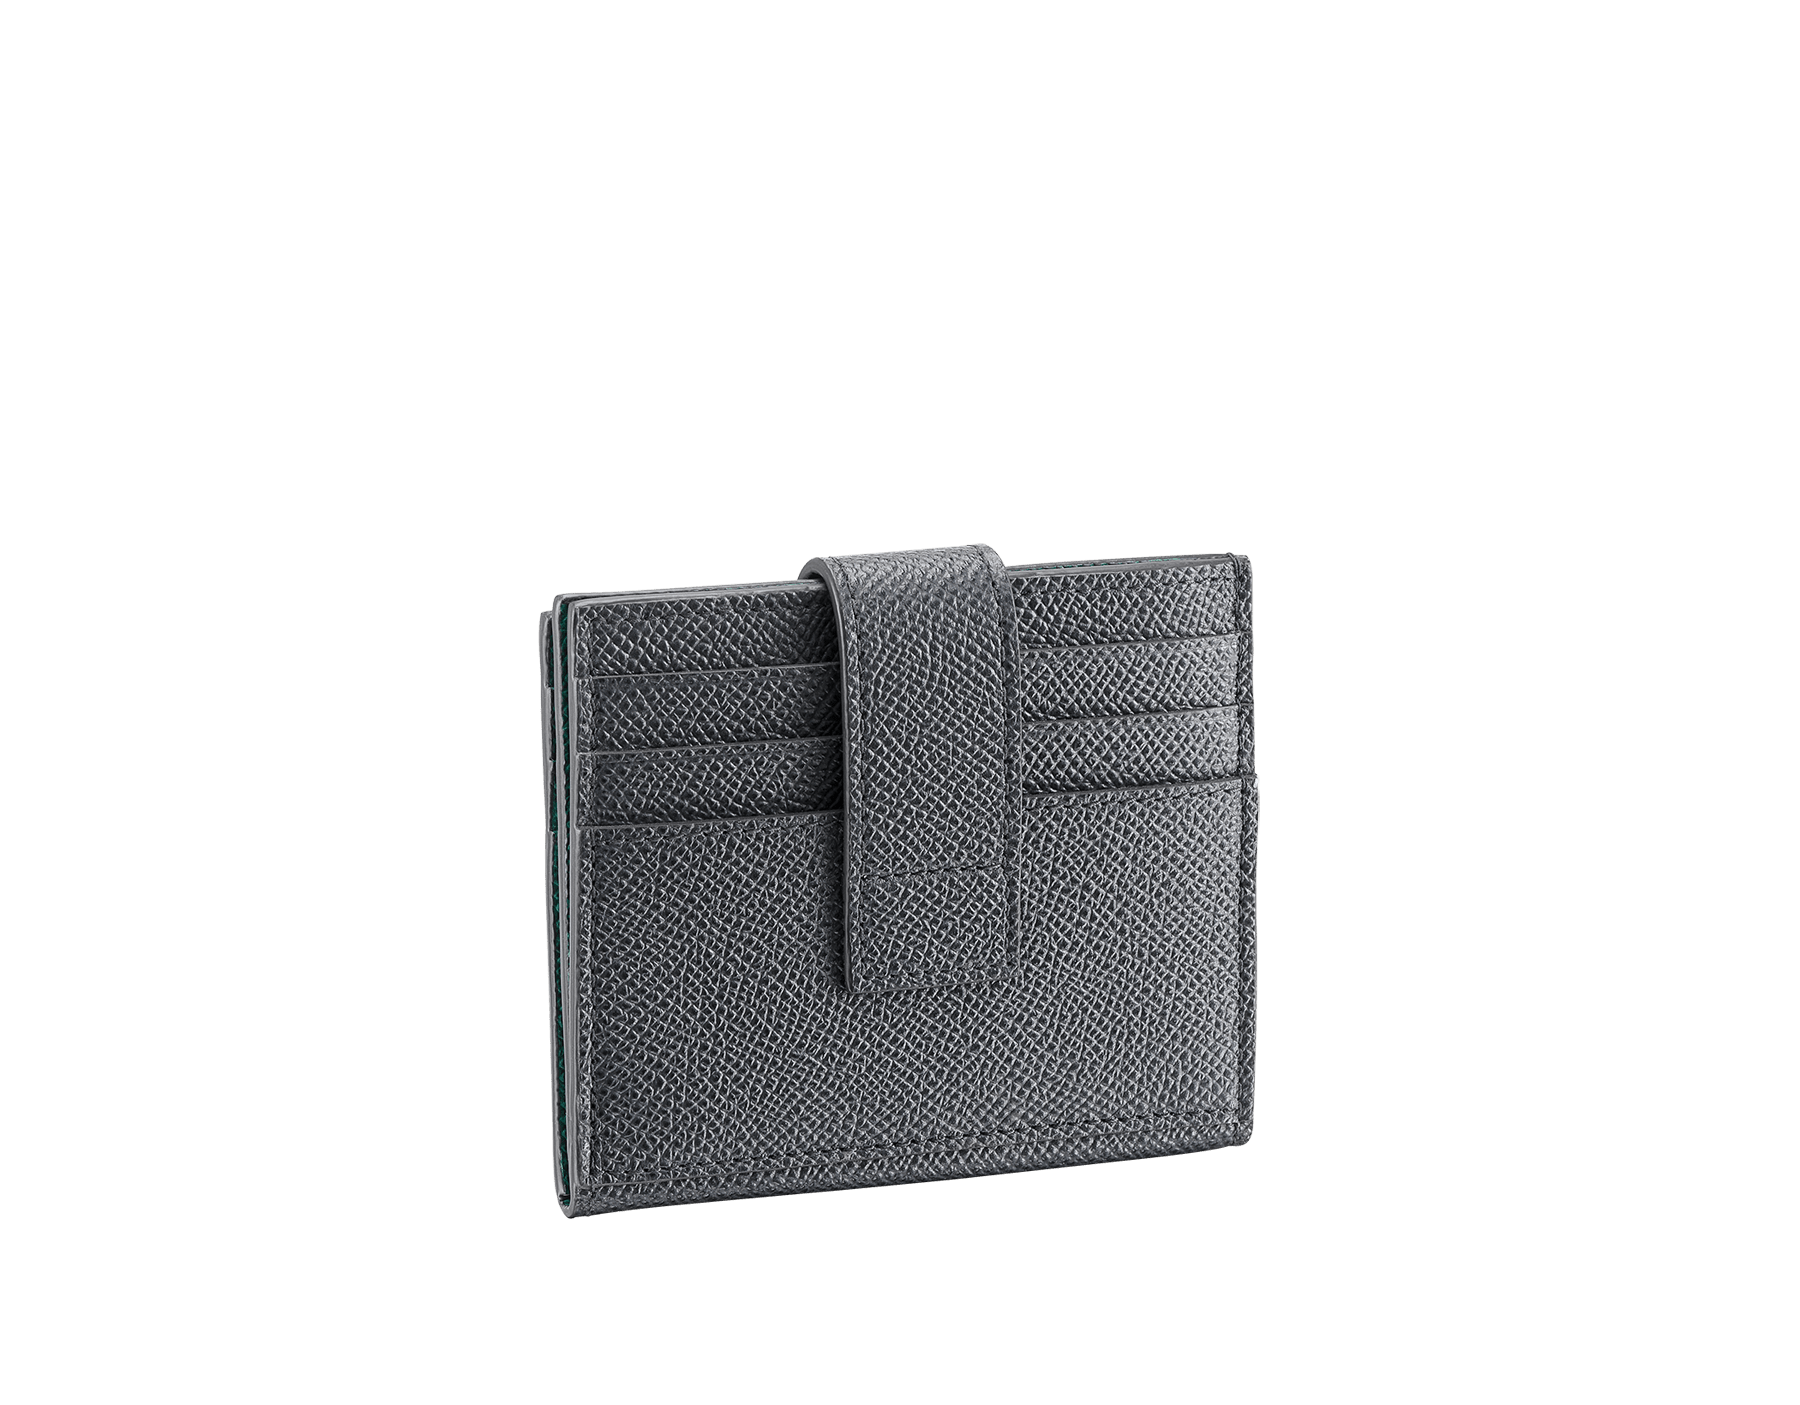 BVLGARI BVLGARI folded credit card holder in black grain calf leather. Iconic logo decoration in palladium-plated brass. BBM-12CCHOLDER image 3